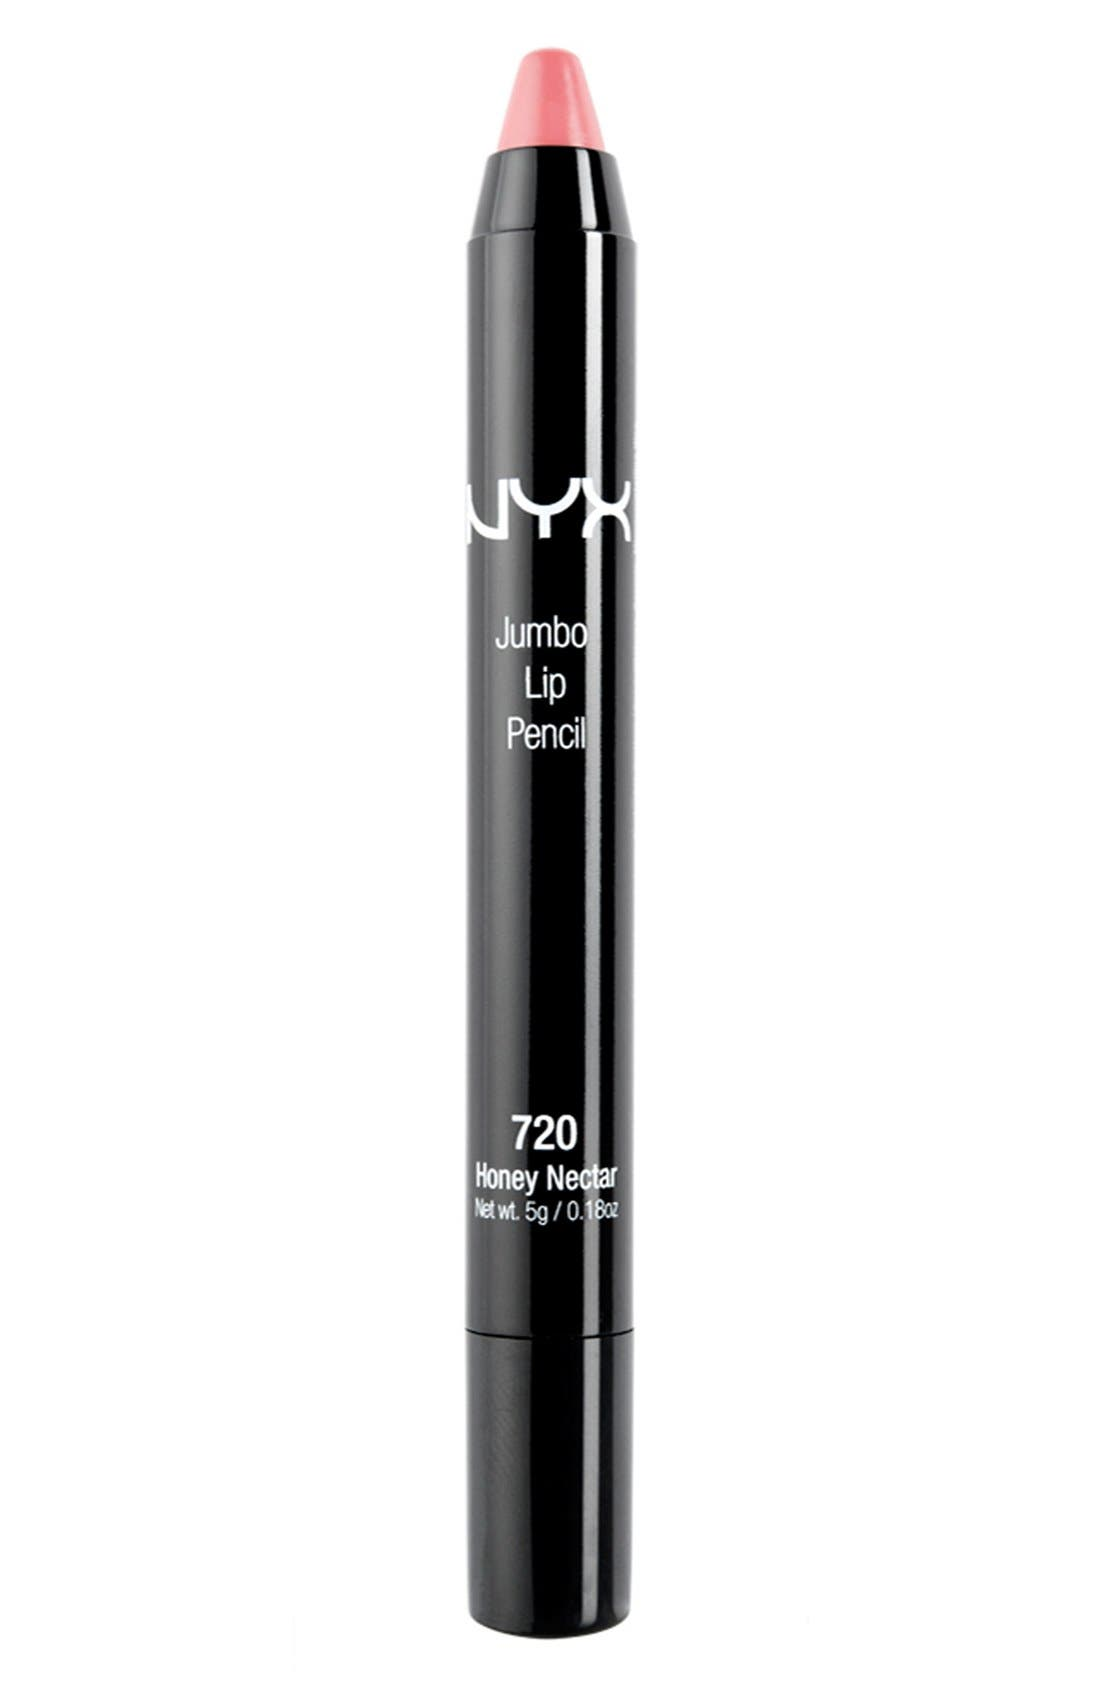 NYX,                             Jumbo Lip Pencil,                             Main thumbnail 1, color,                             960